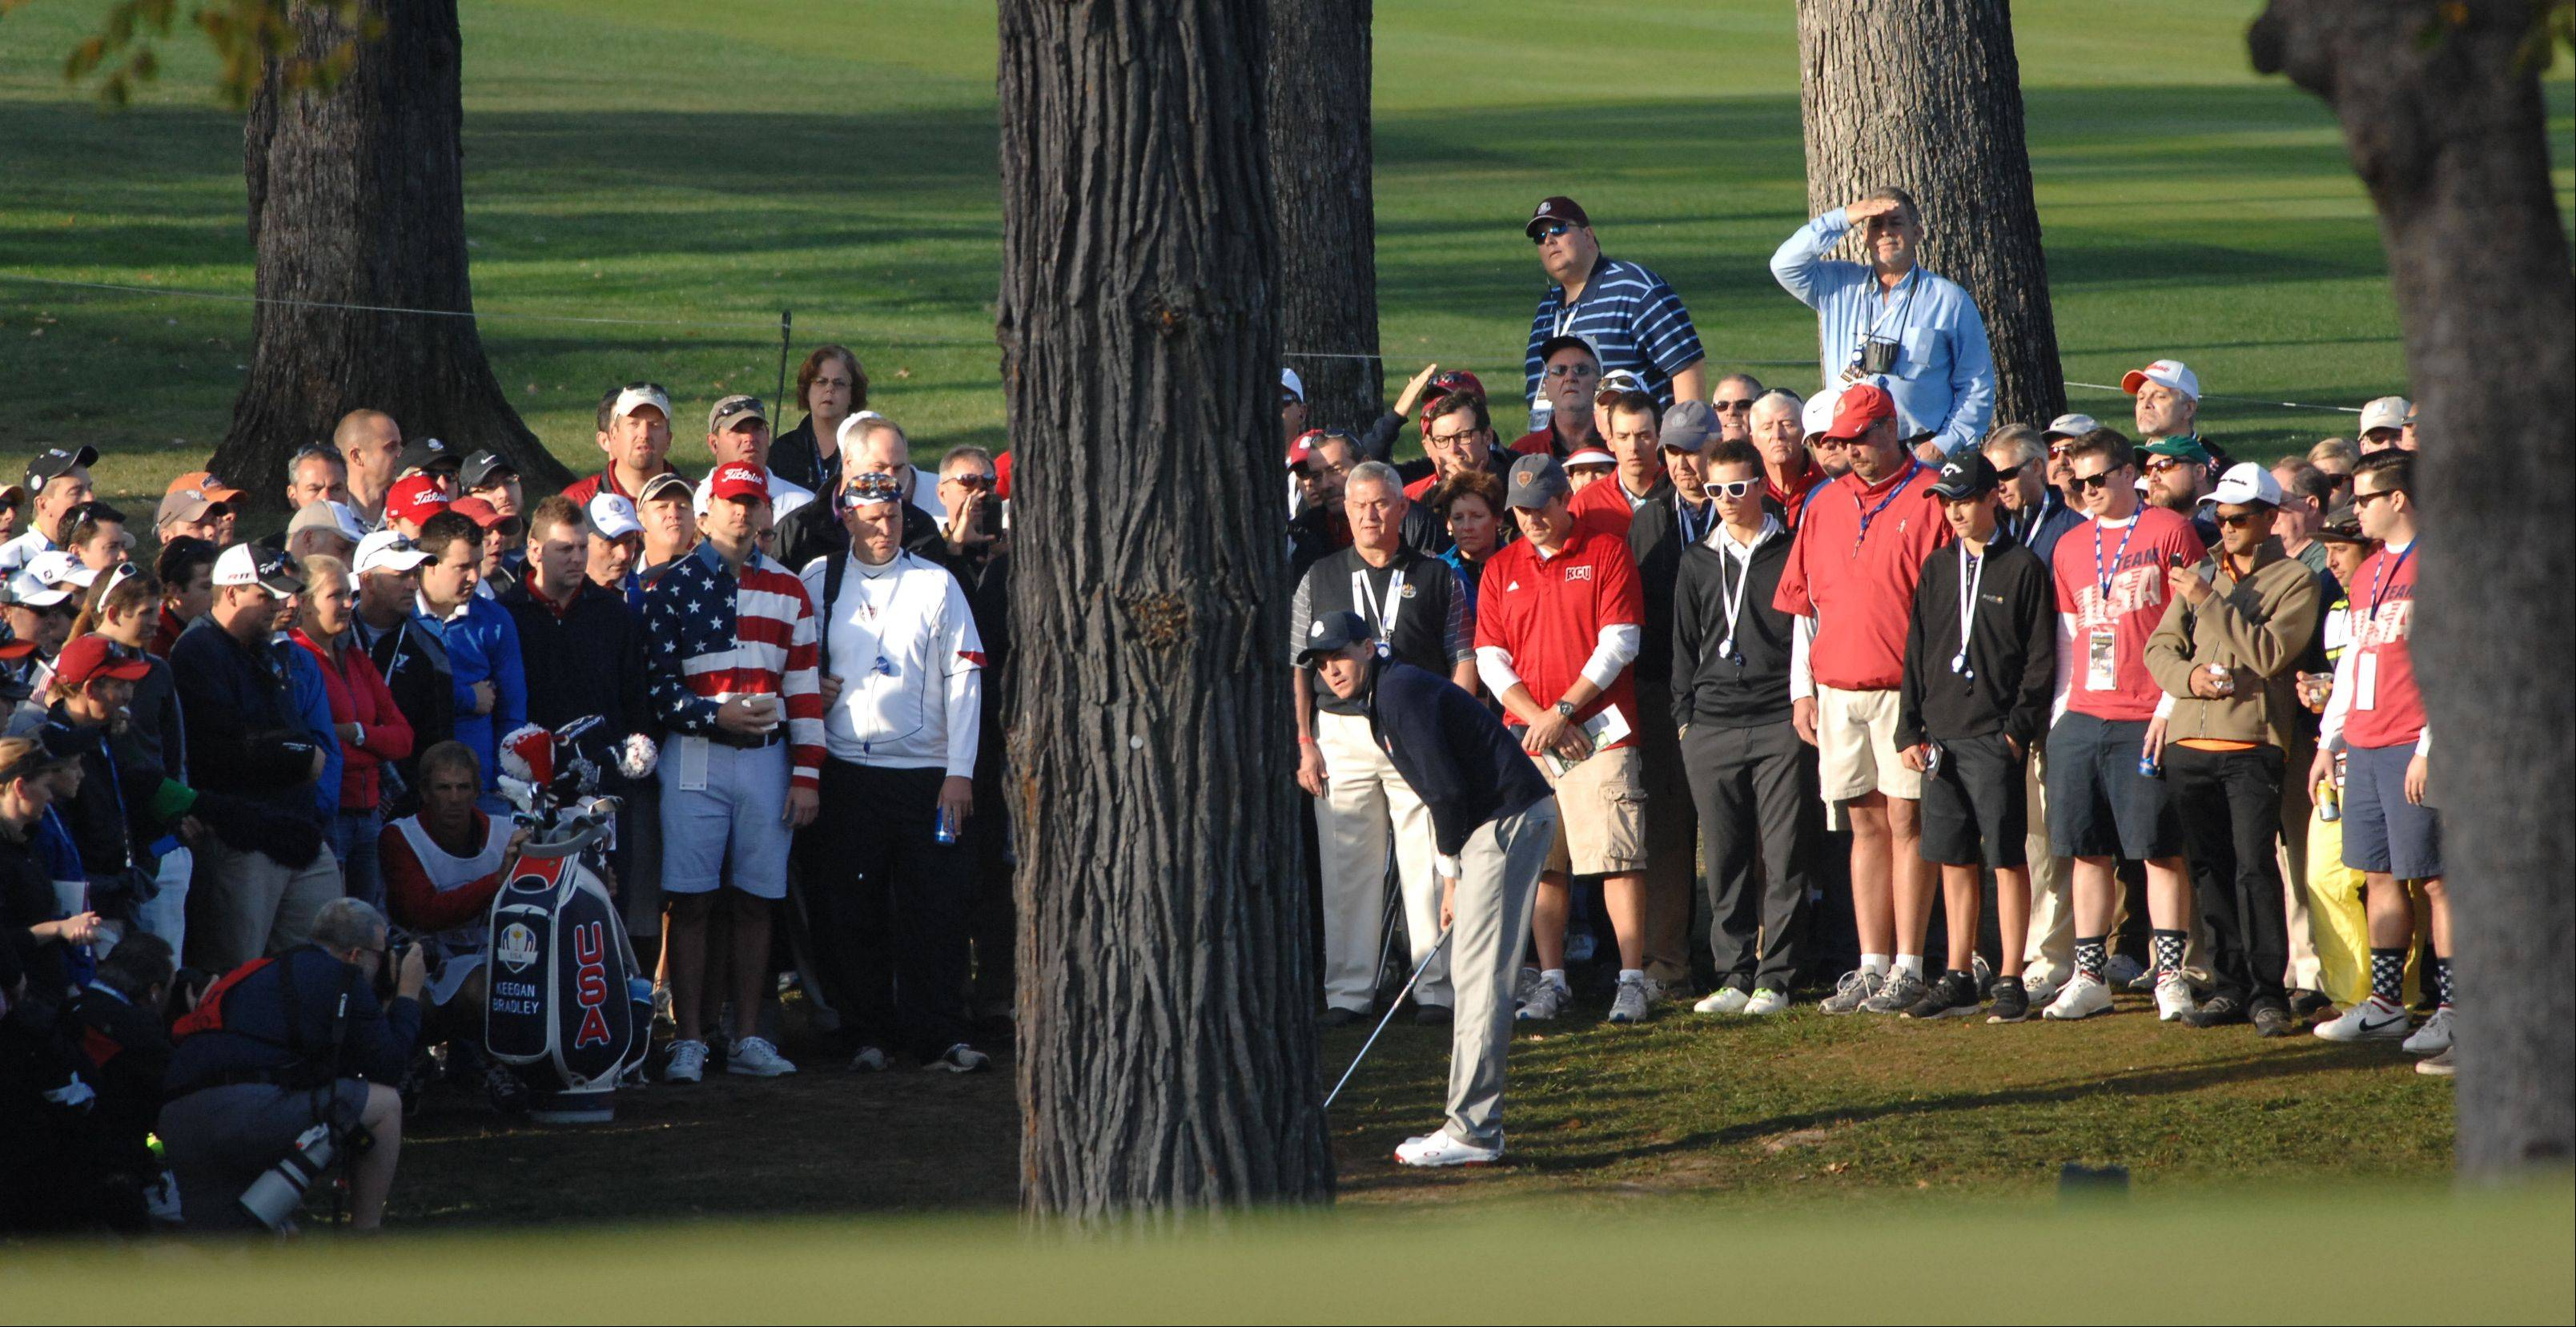 Keegan Bradley hitting from the rough on hole 4 Saturday morning during day 2 of the 2012 Ryder Cup at Medinah Country Club.